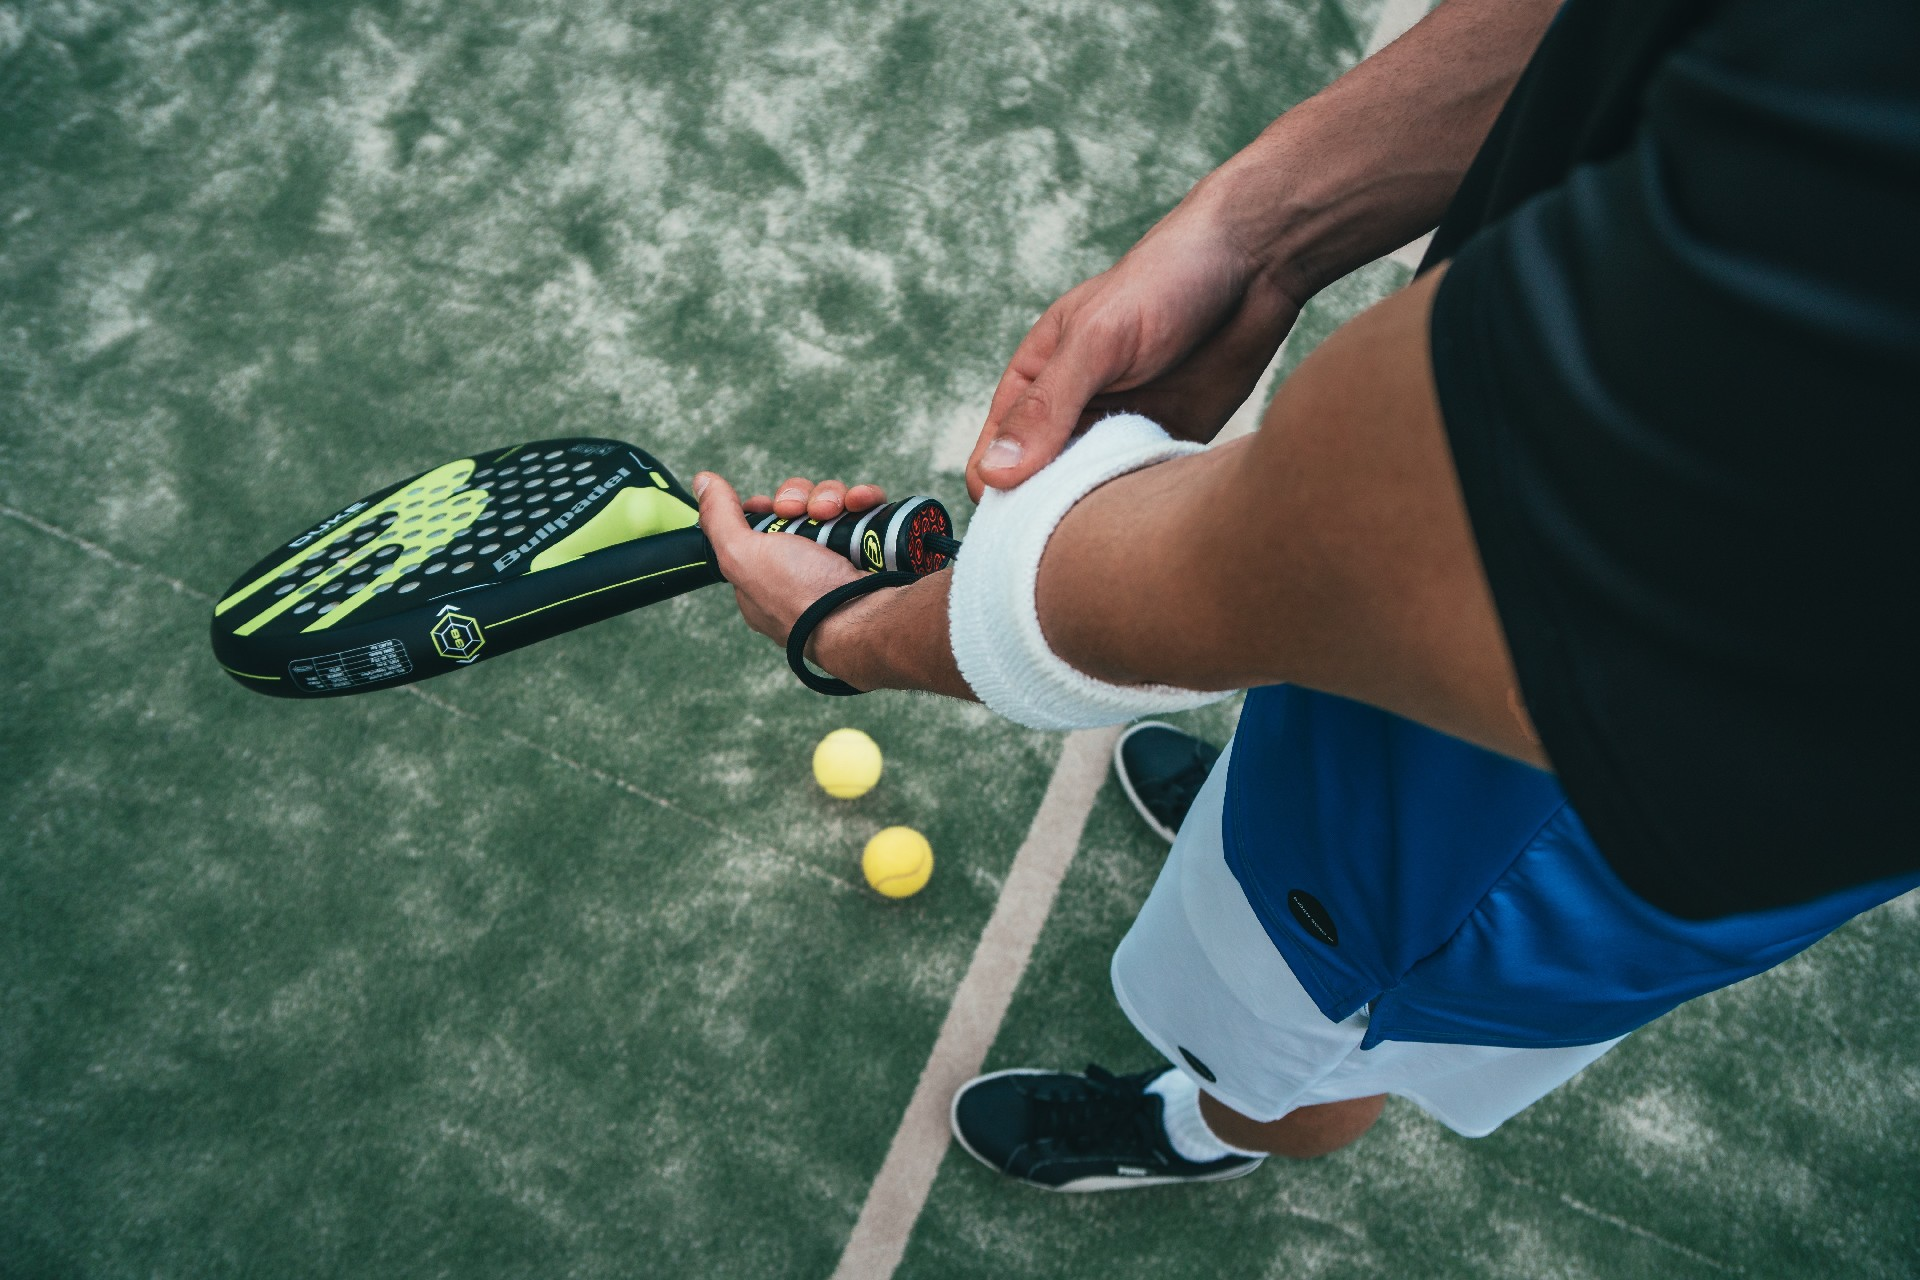 Tag-Heuer_pexels_person-holding-black-and-green-tennis-racket-1103829